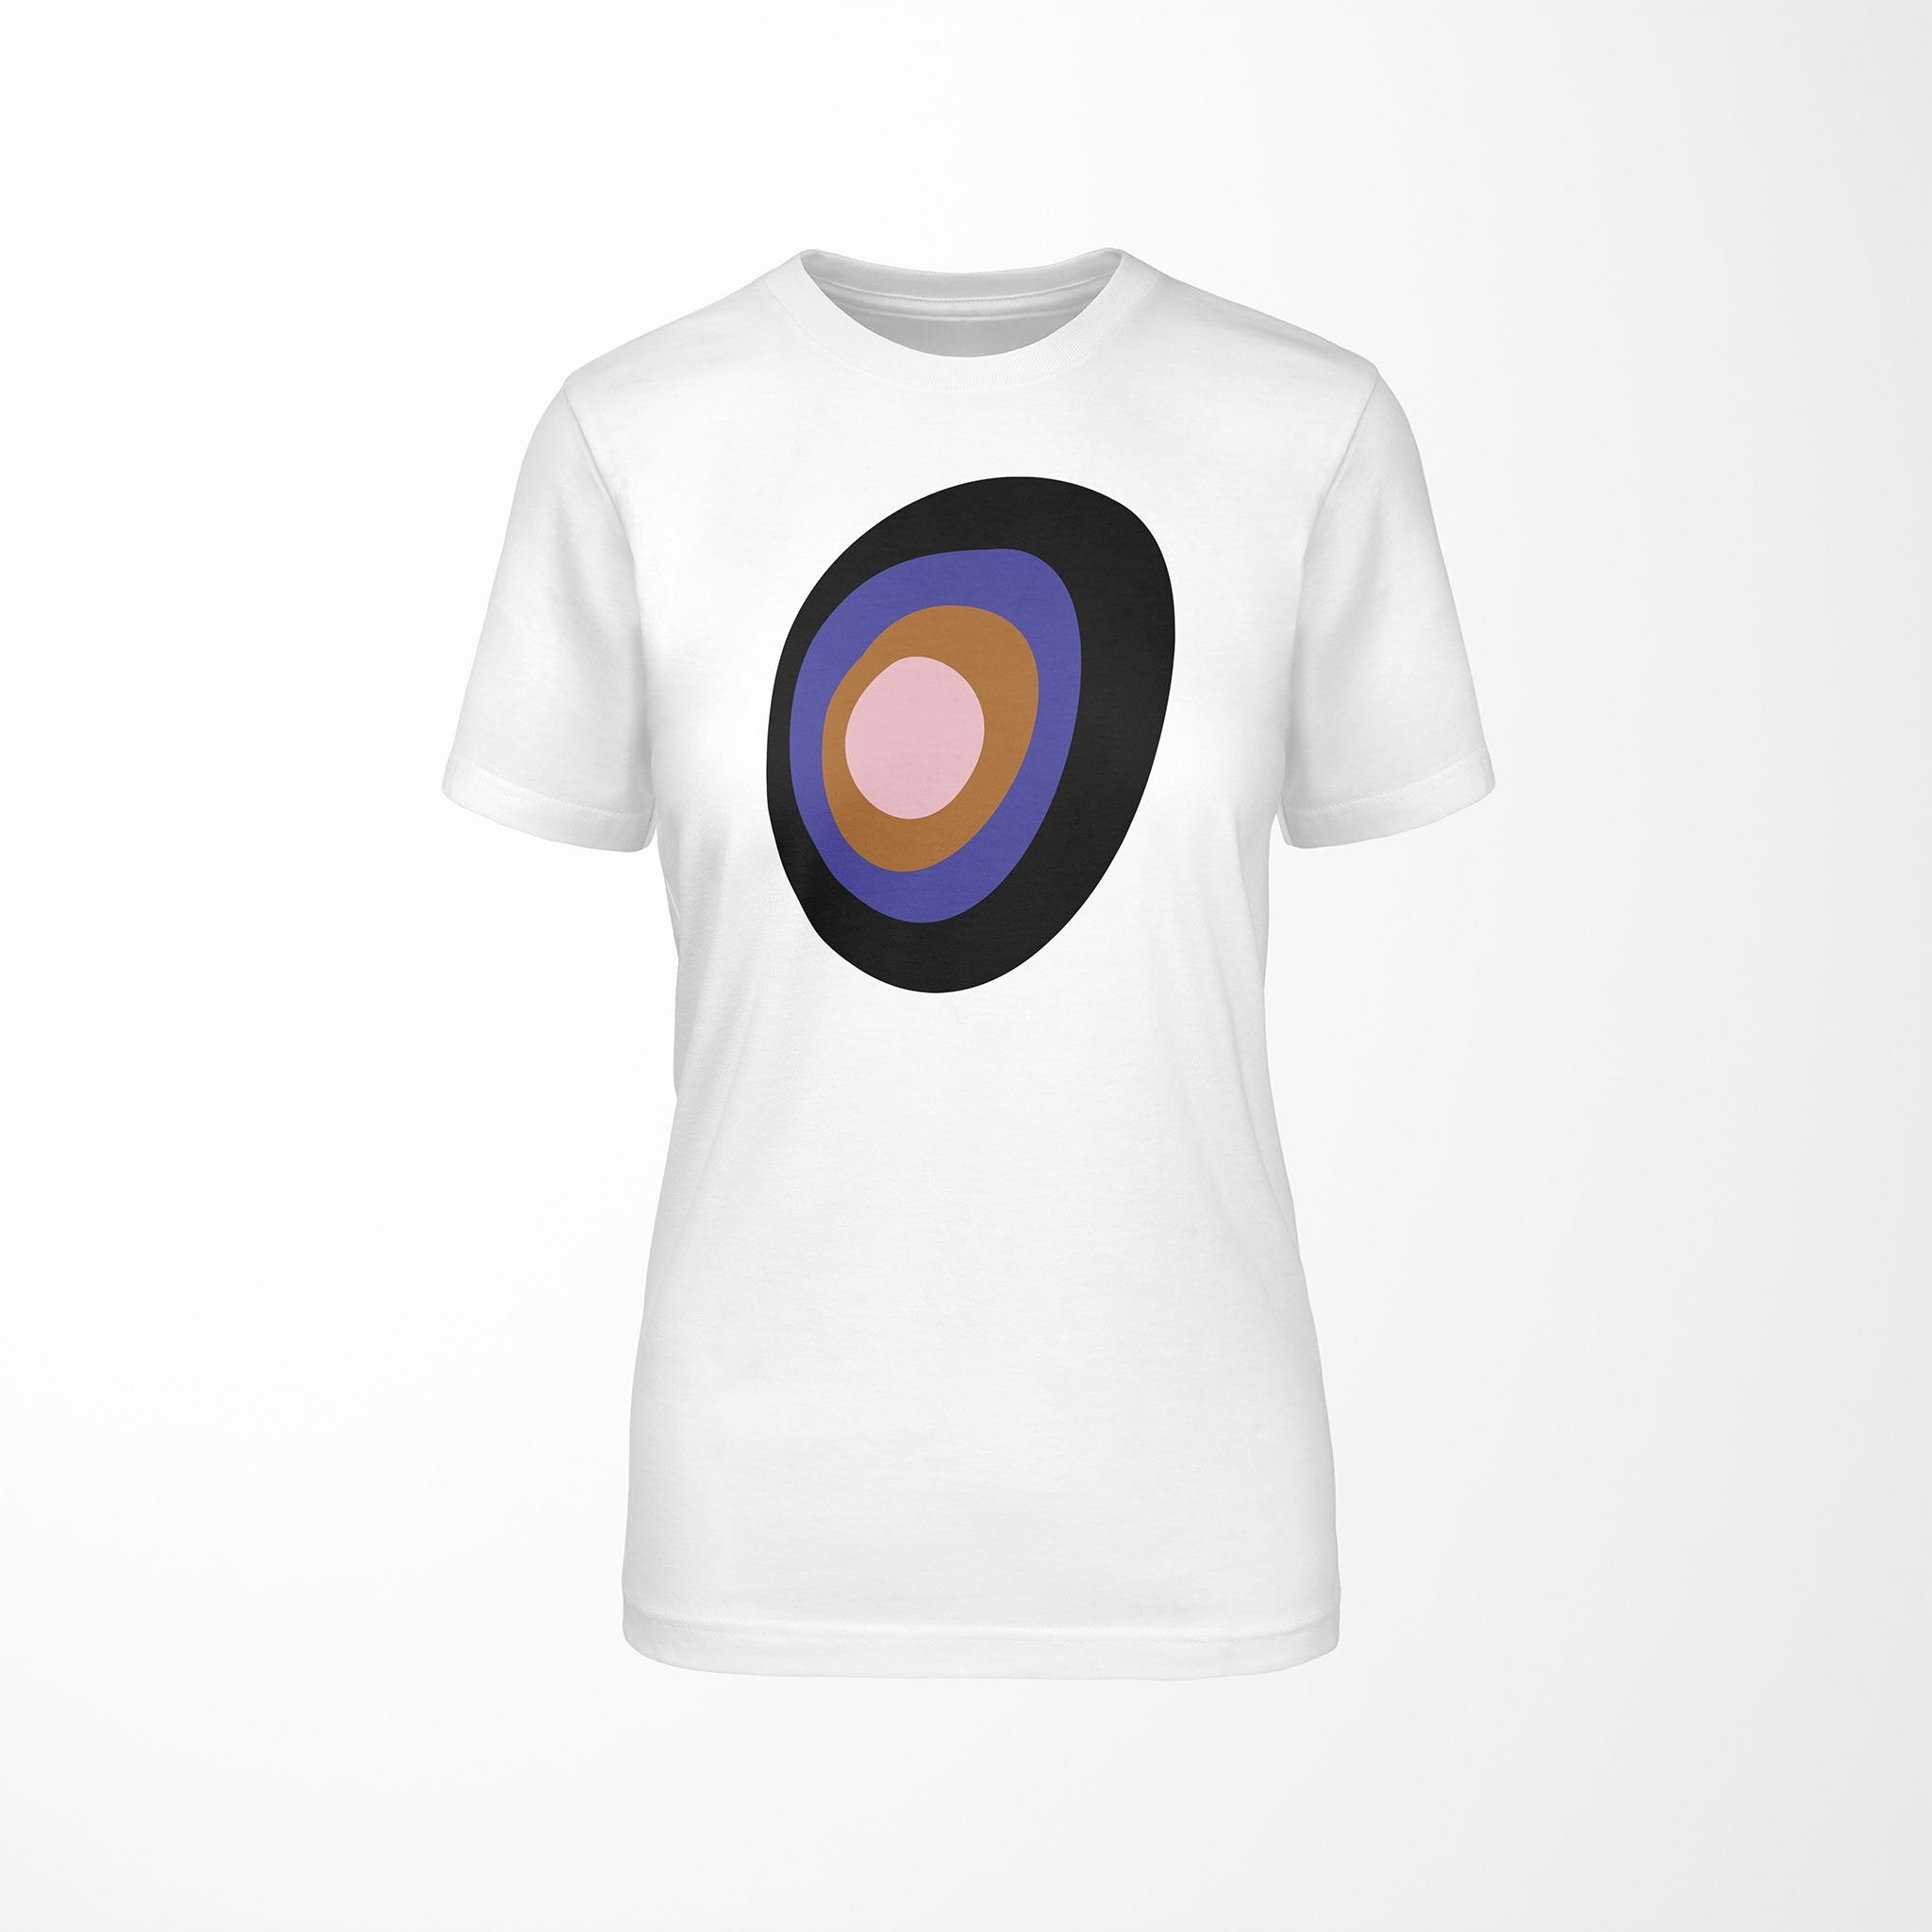 CONCENTRIC Relaxed Fit Women's 100% Cotton White T-Shirt  front